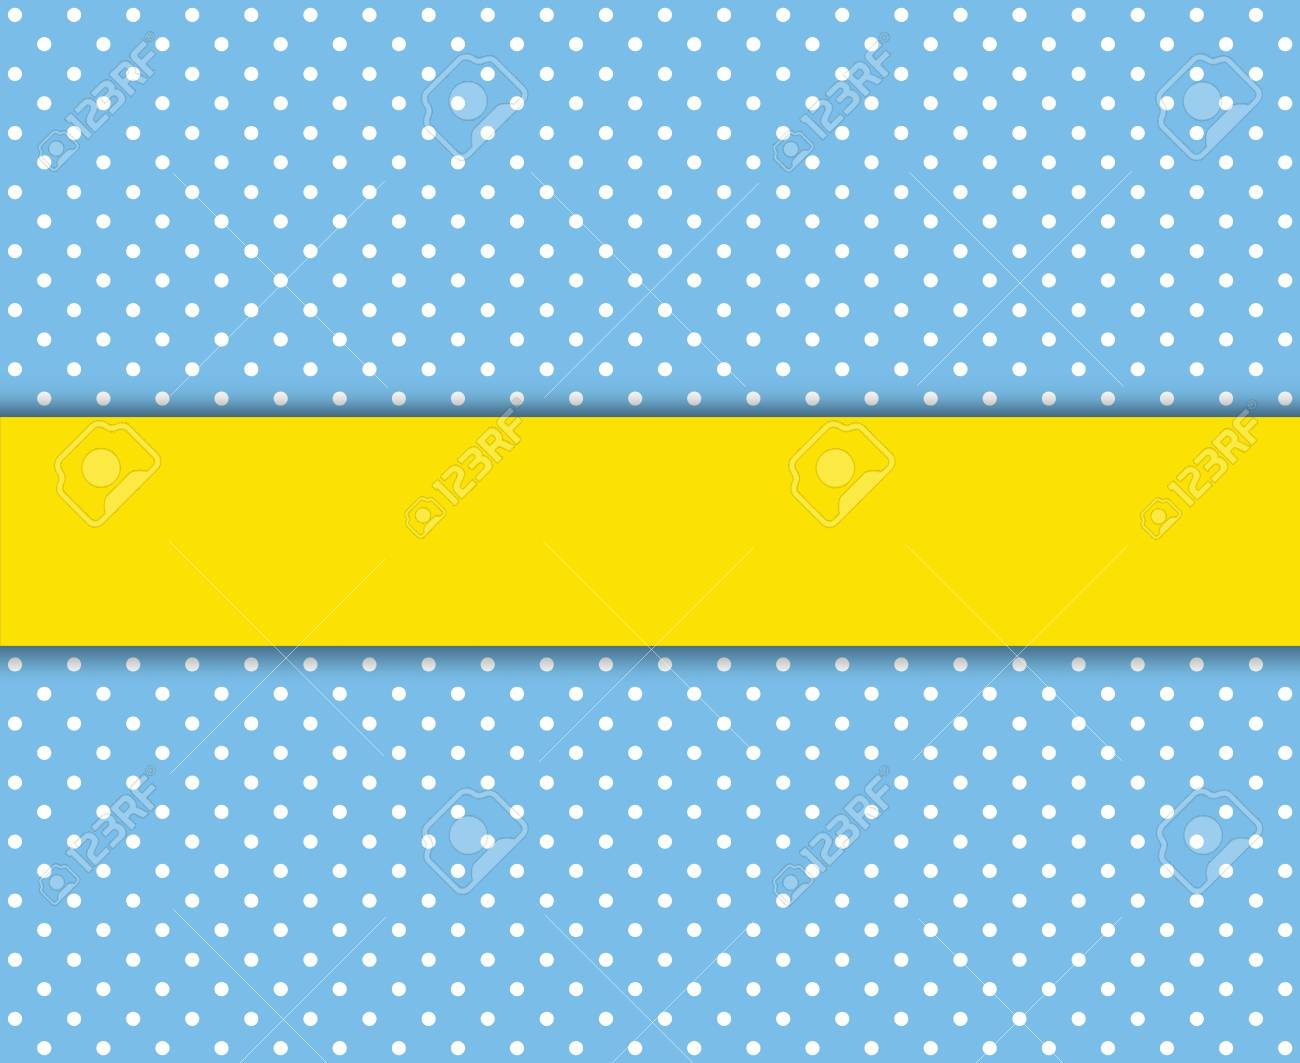 Light Blue Polka Dot Background With White Dots And Yellow Stripe